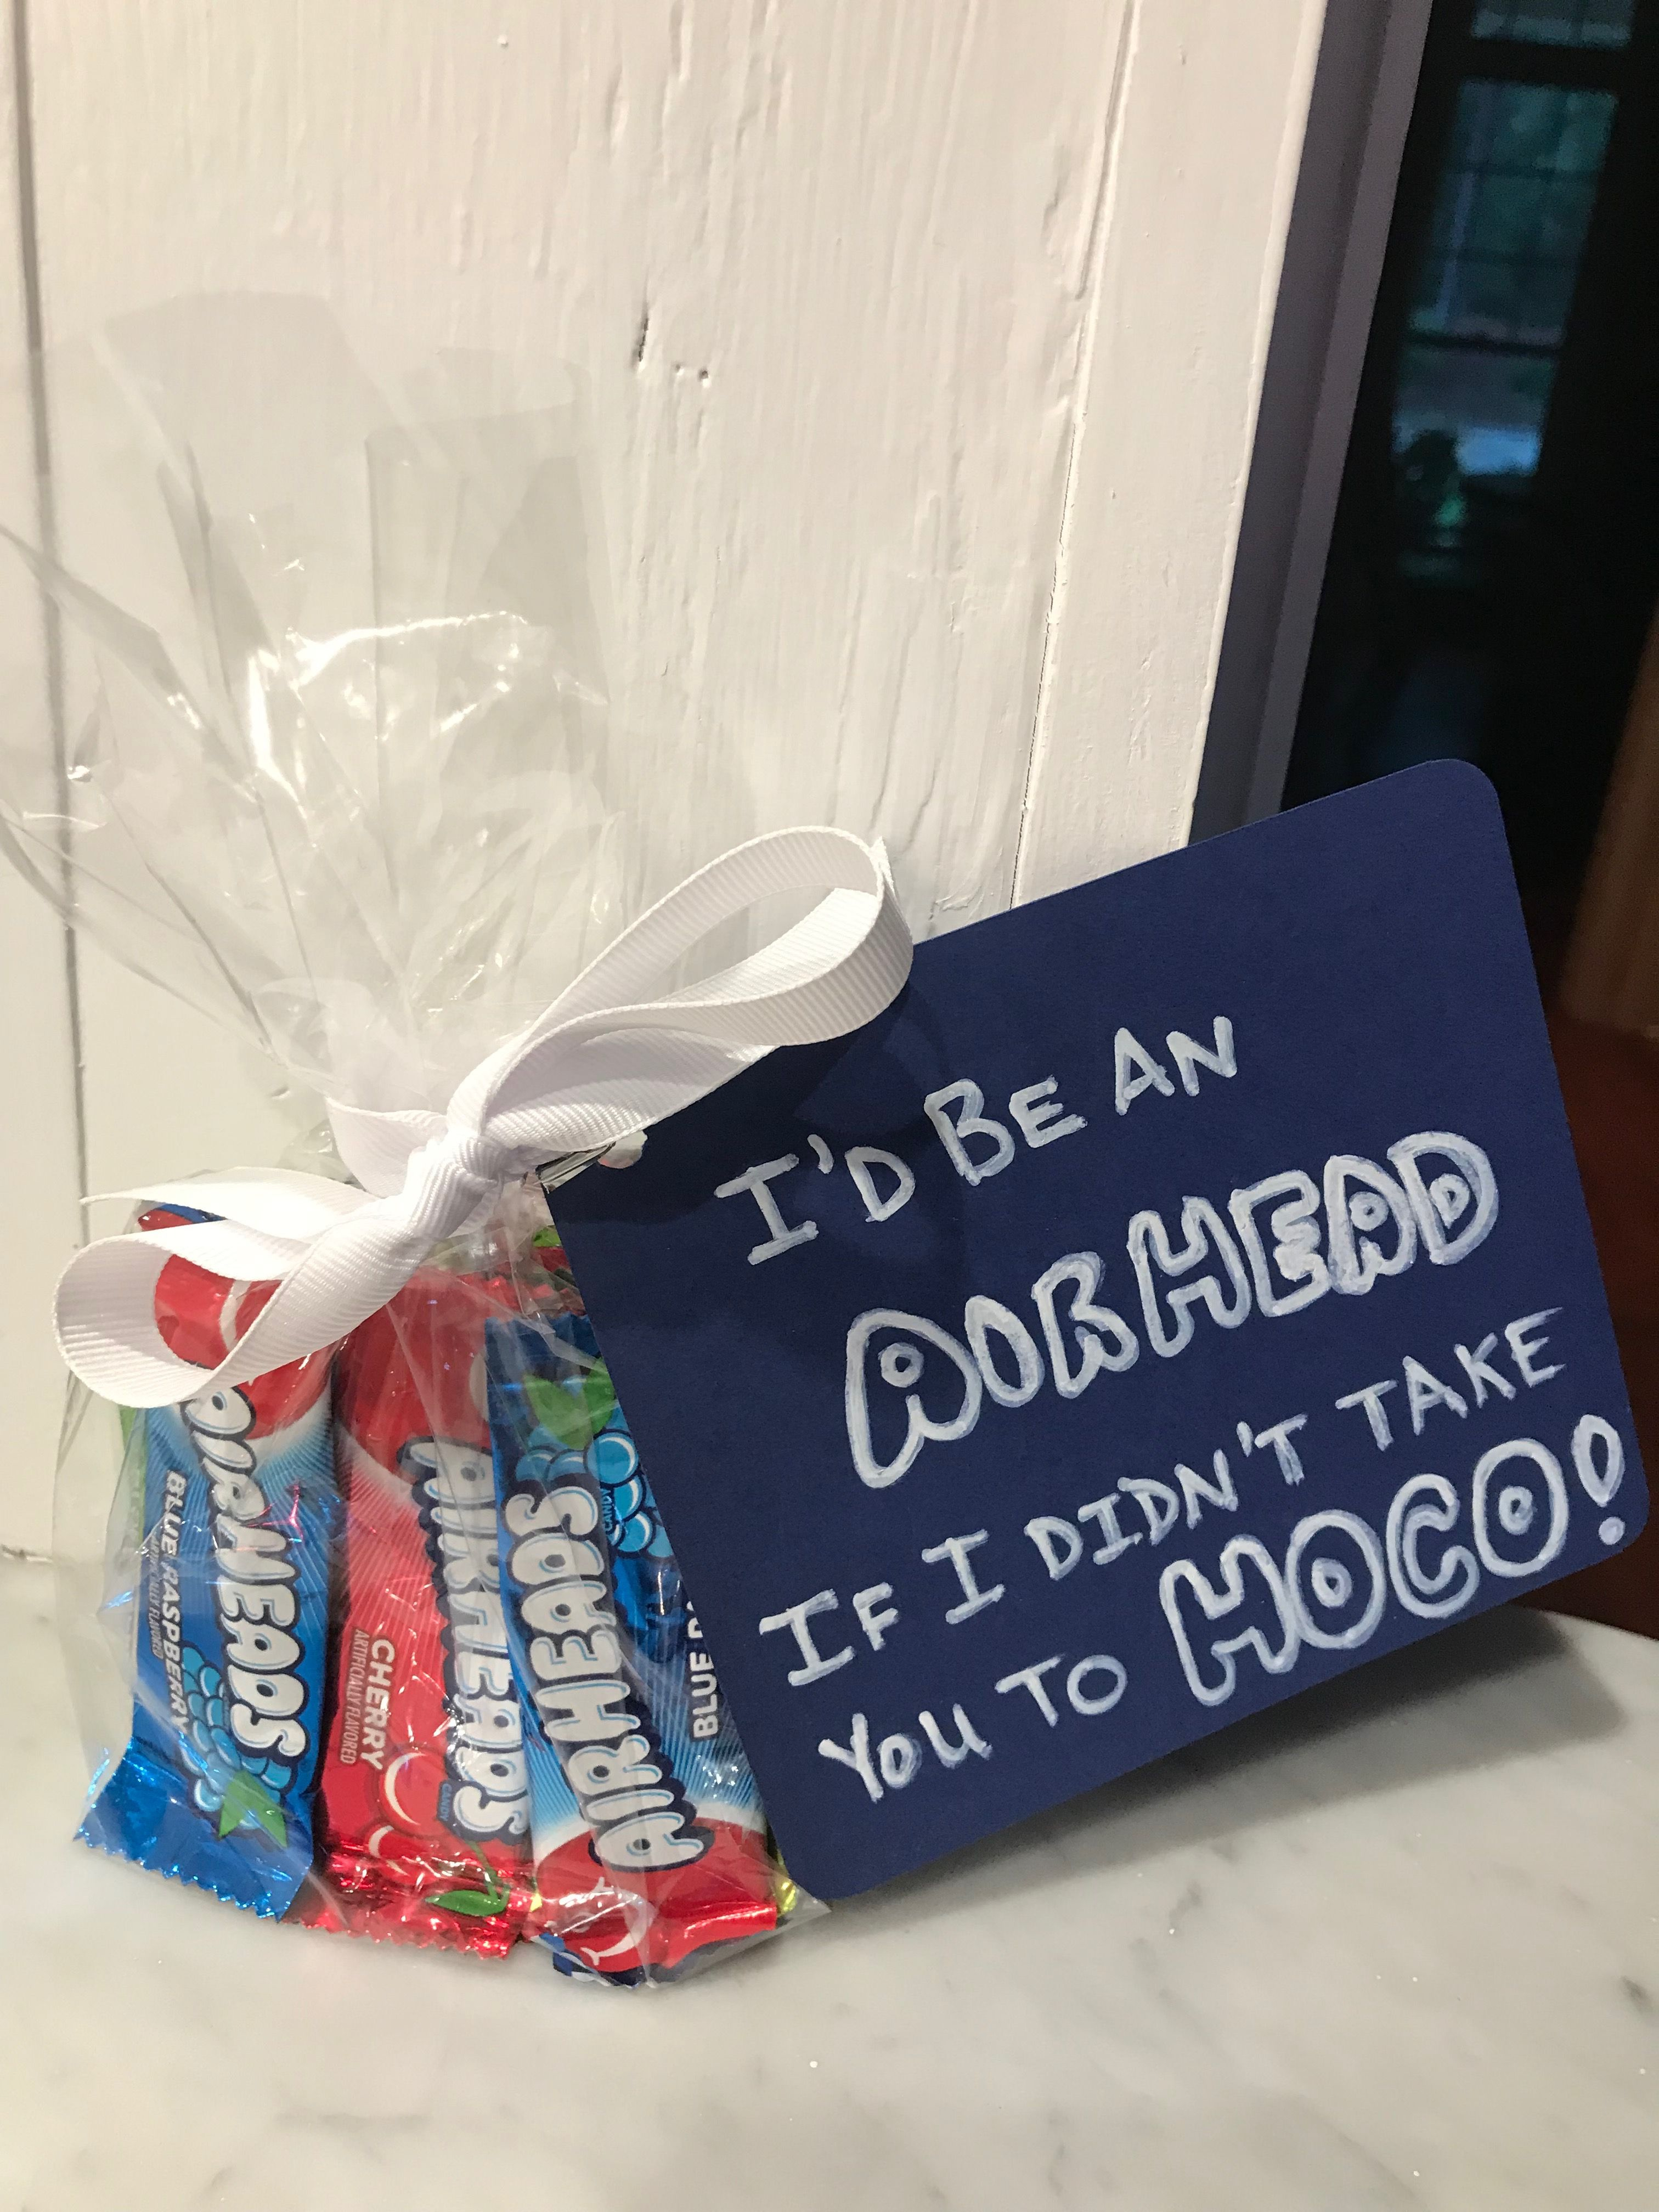 Hoco Proposal with Candy #hocoproposals